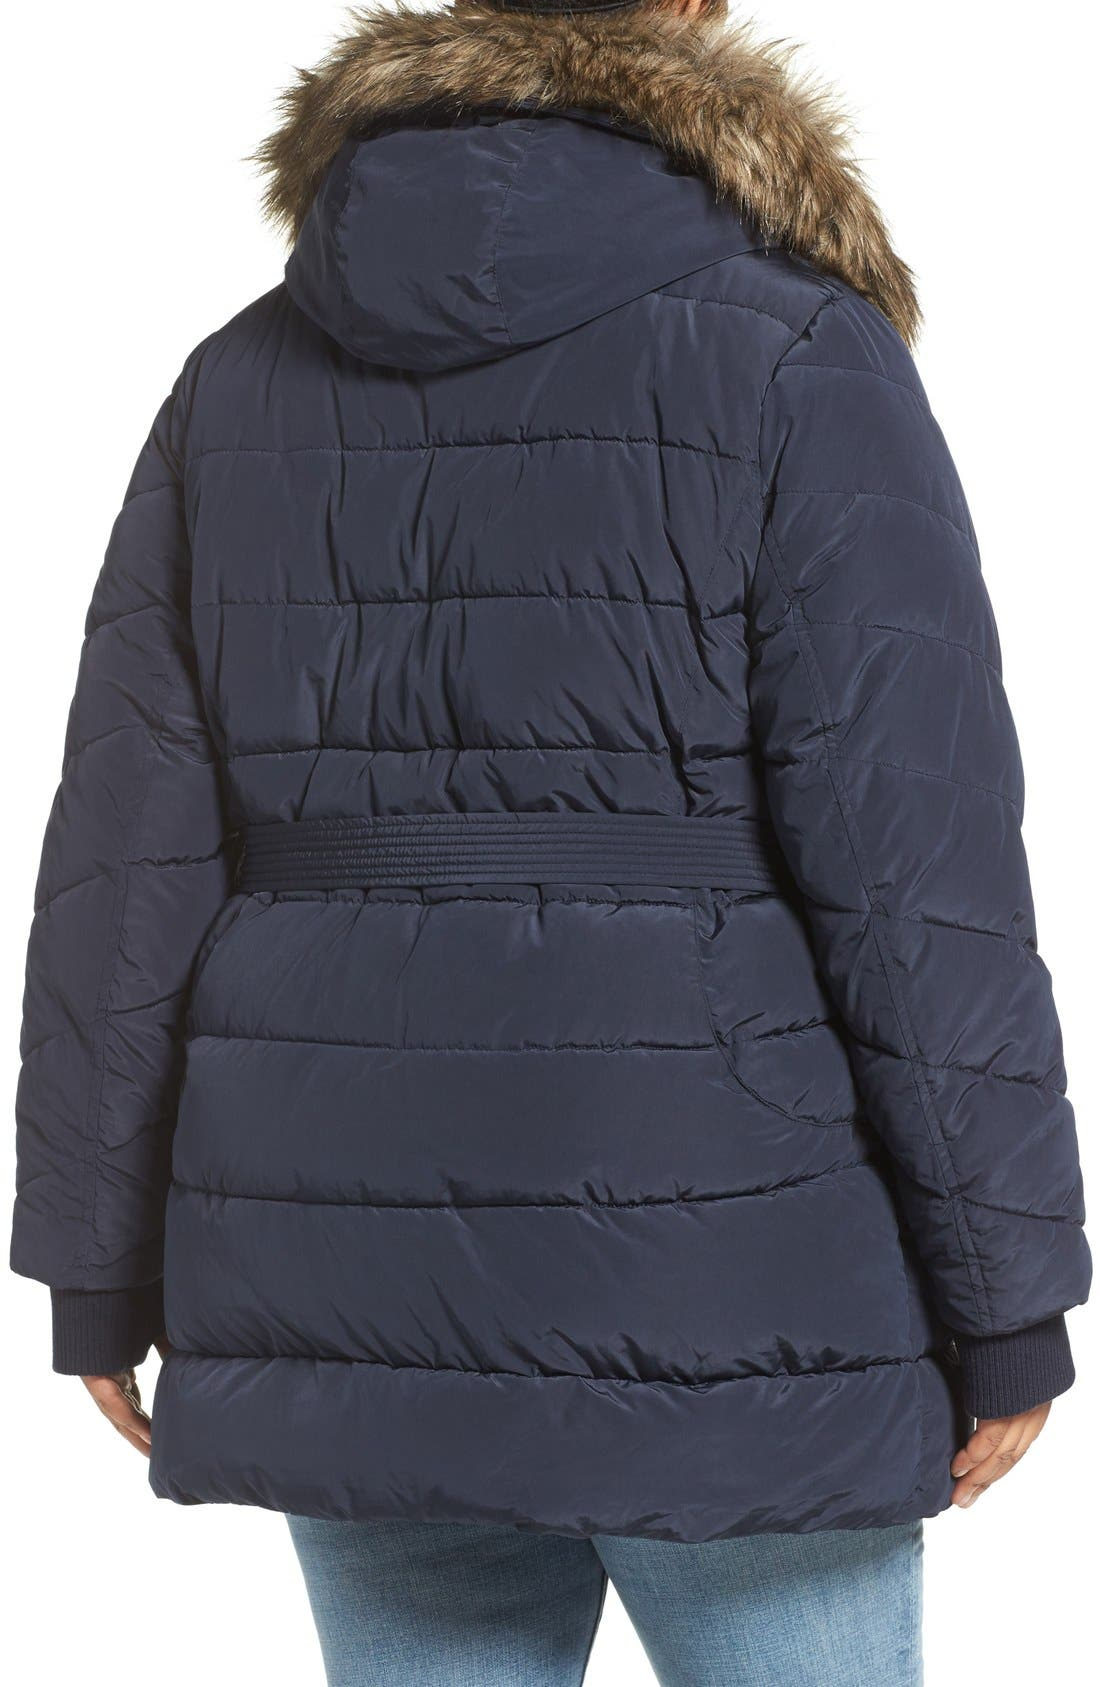 Alternate Image 2  - Lucky Brand Belted Puffer Jacket with Faux Fur Trim (Plus Size)